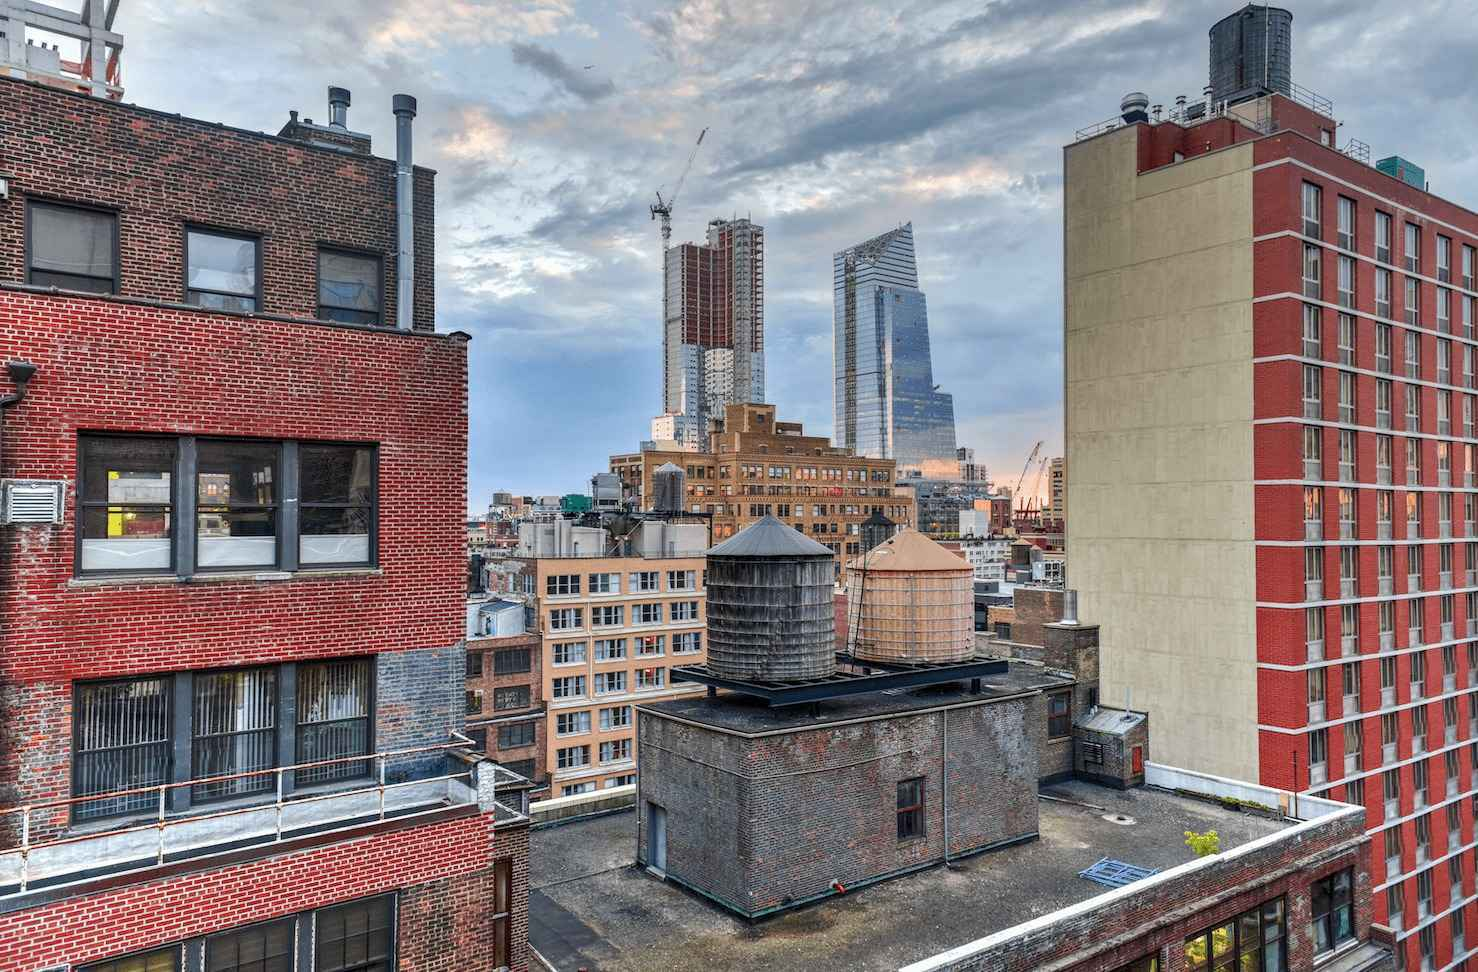 Residential Skyline in Hell's Kitchen New York